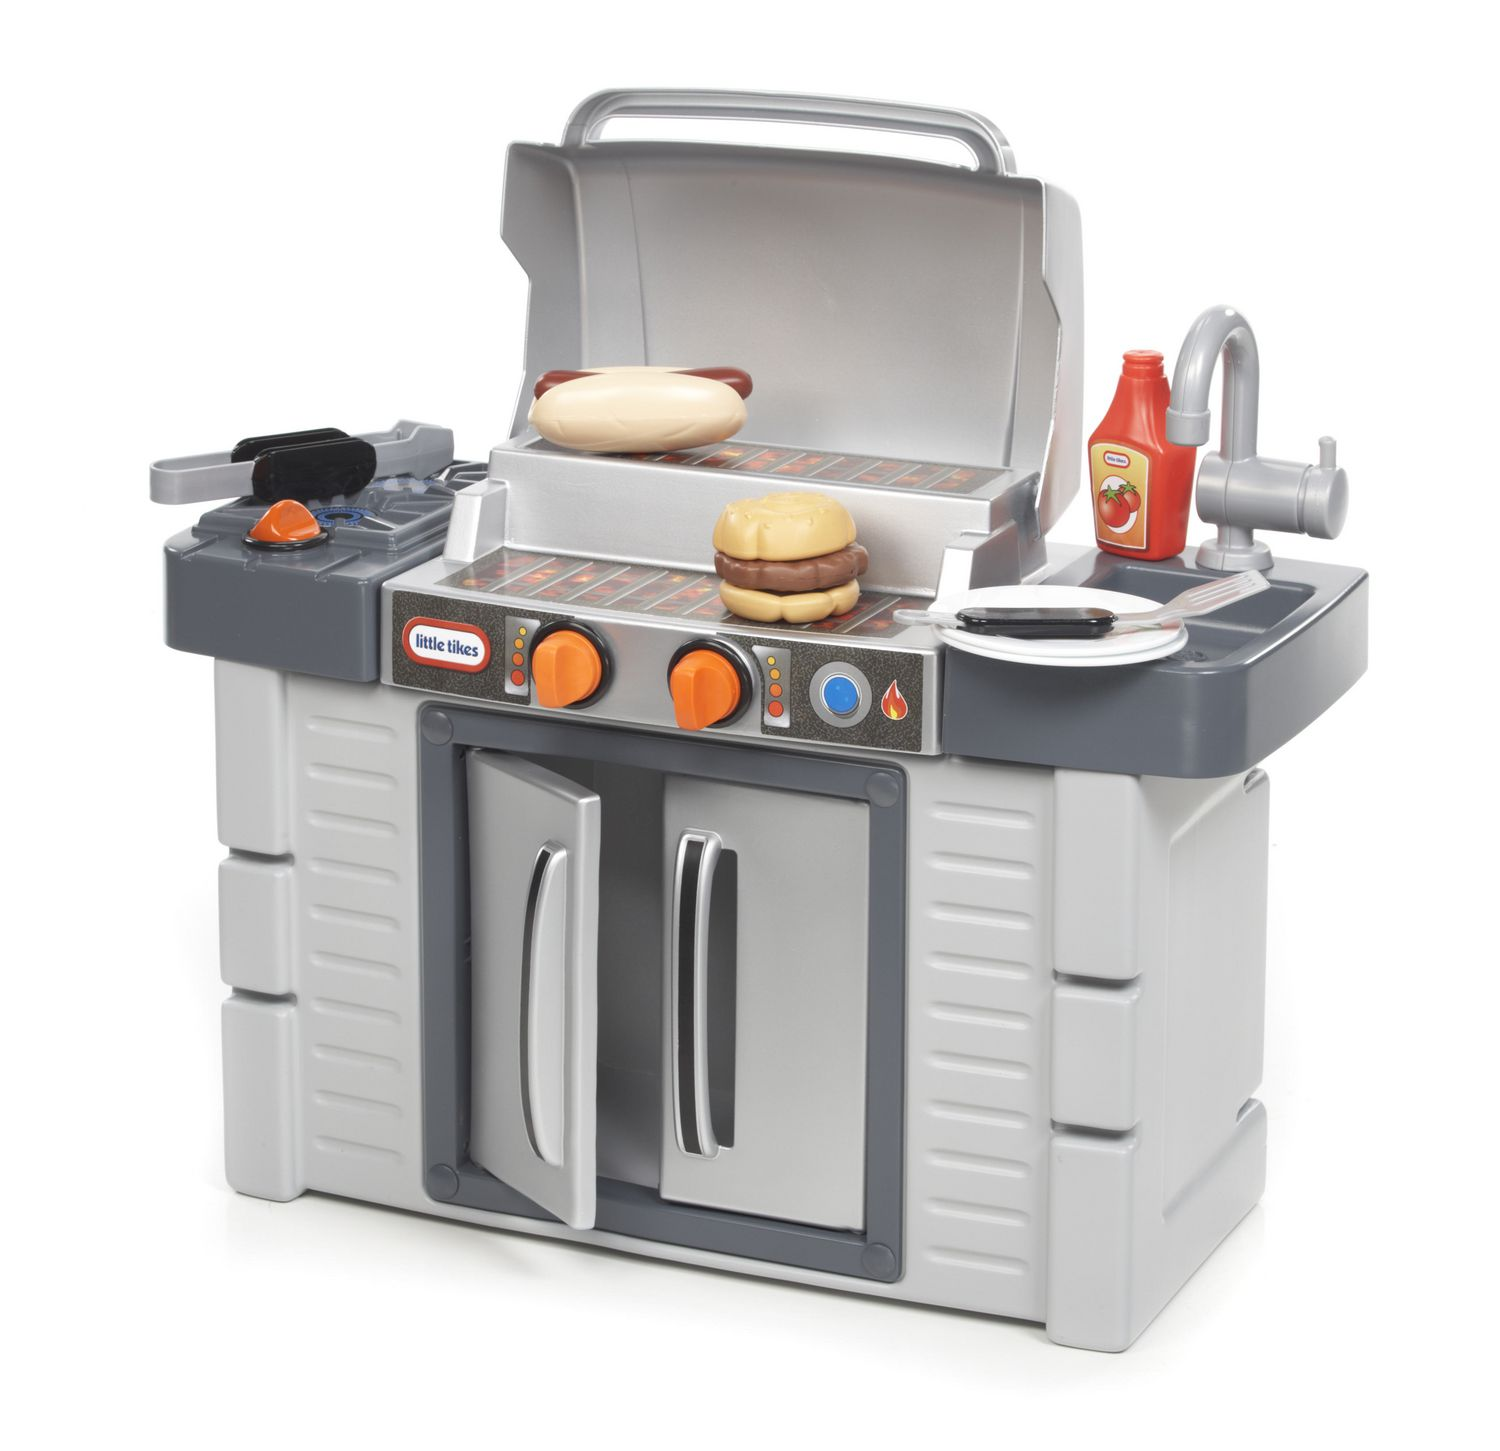 Perfect Toy Kitchen Walmart Festooning - Kitchen Cabinets | Ideas ...